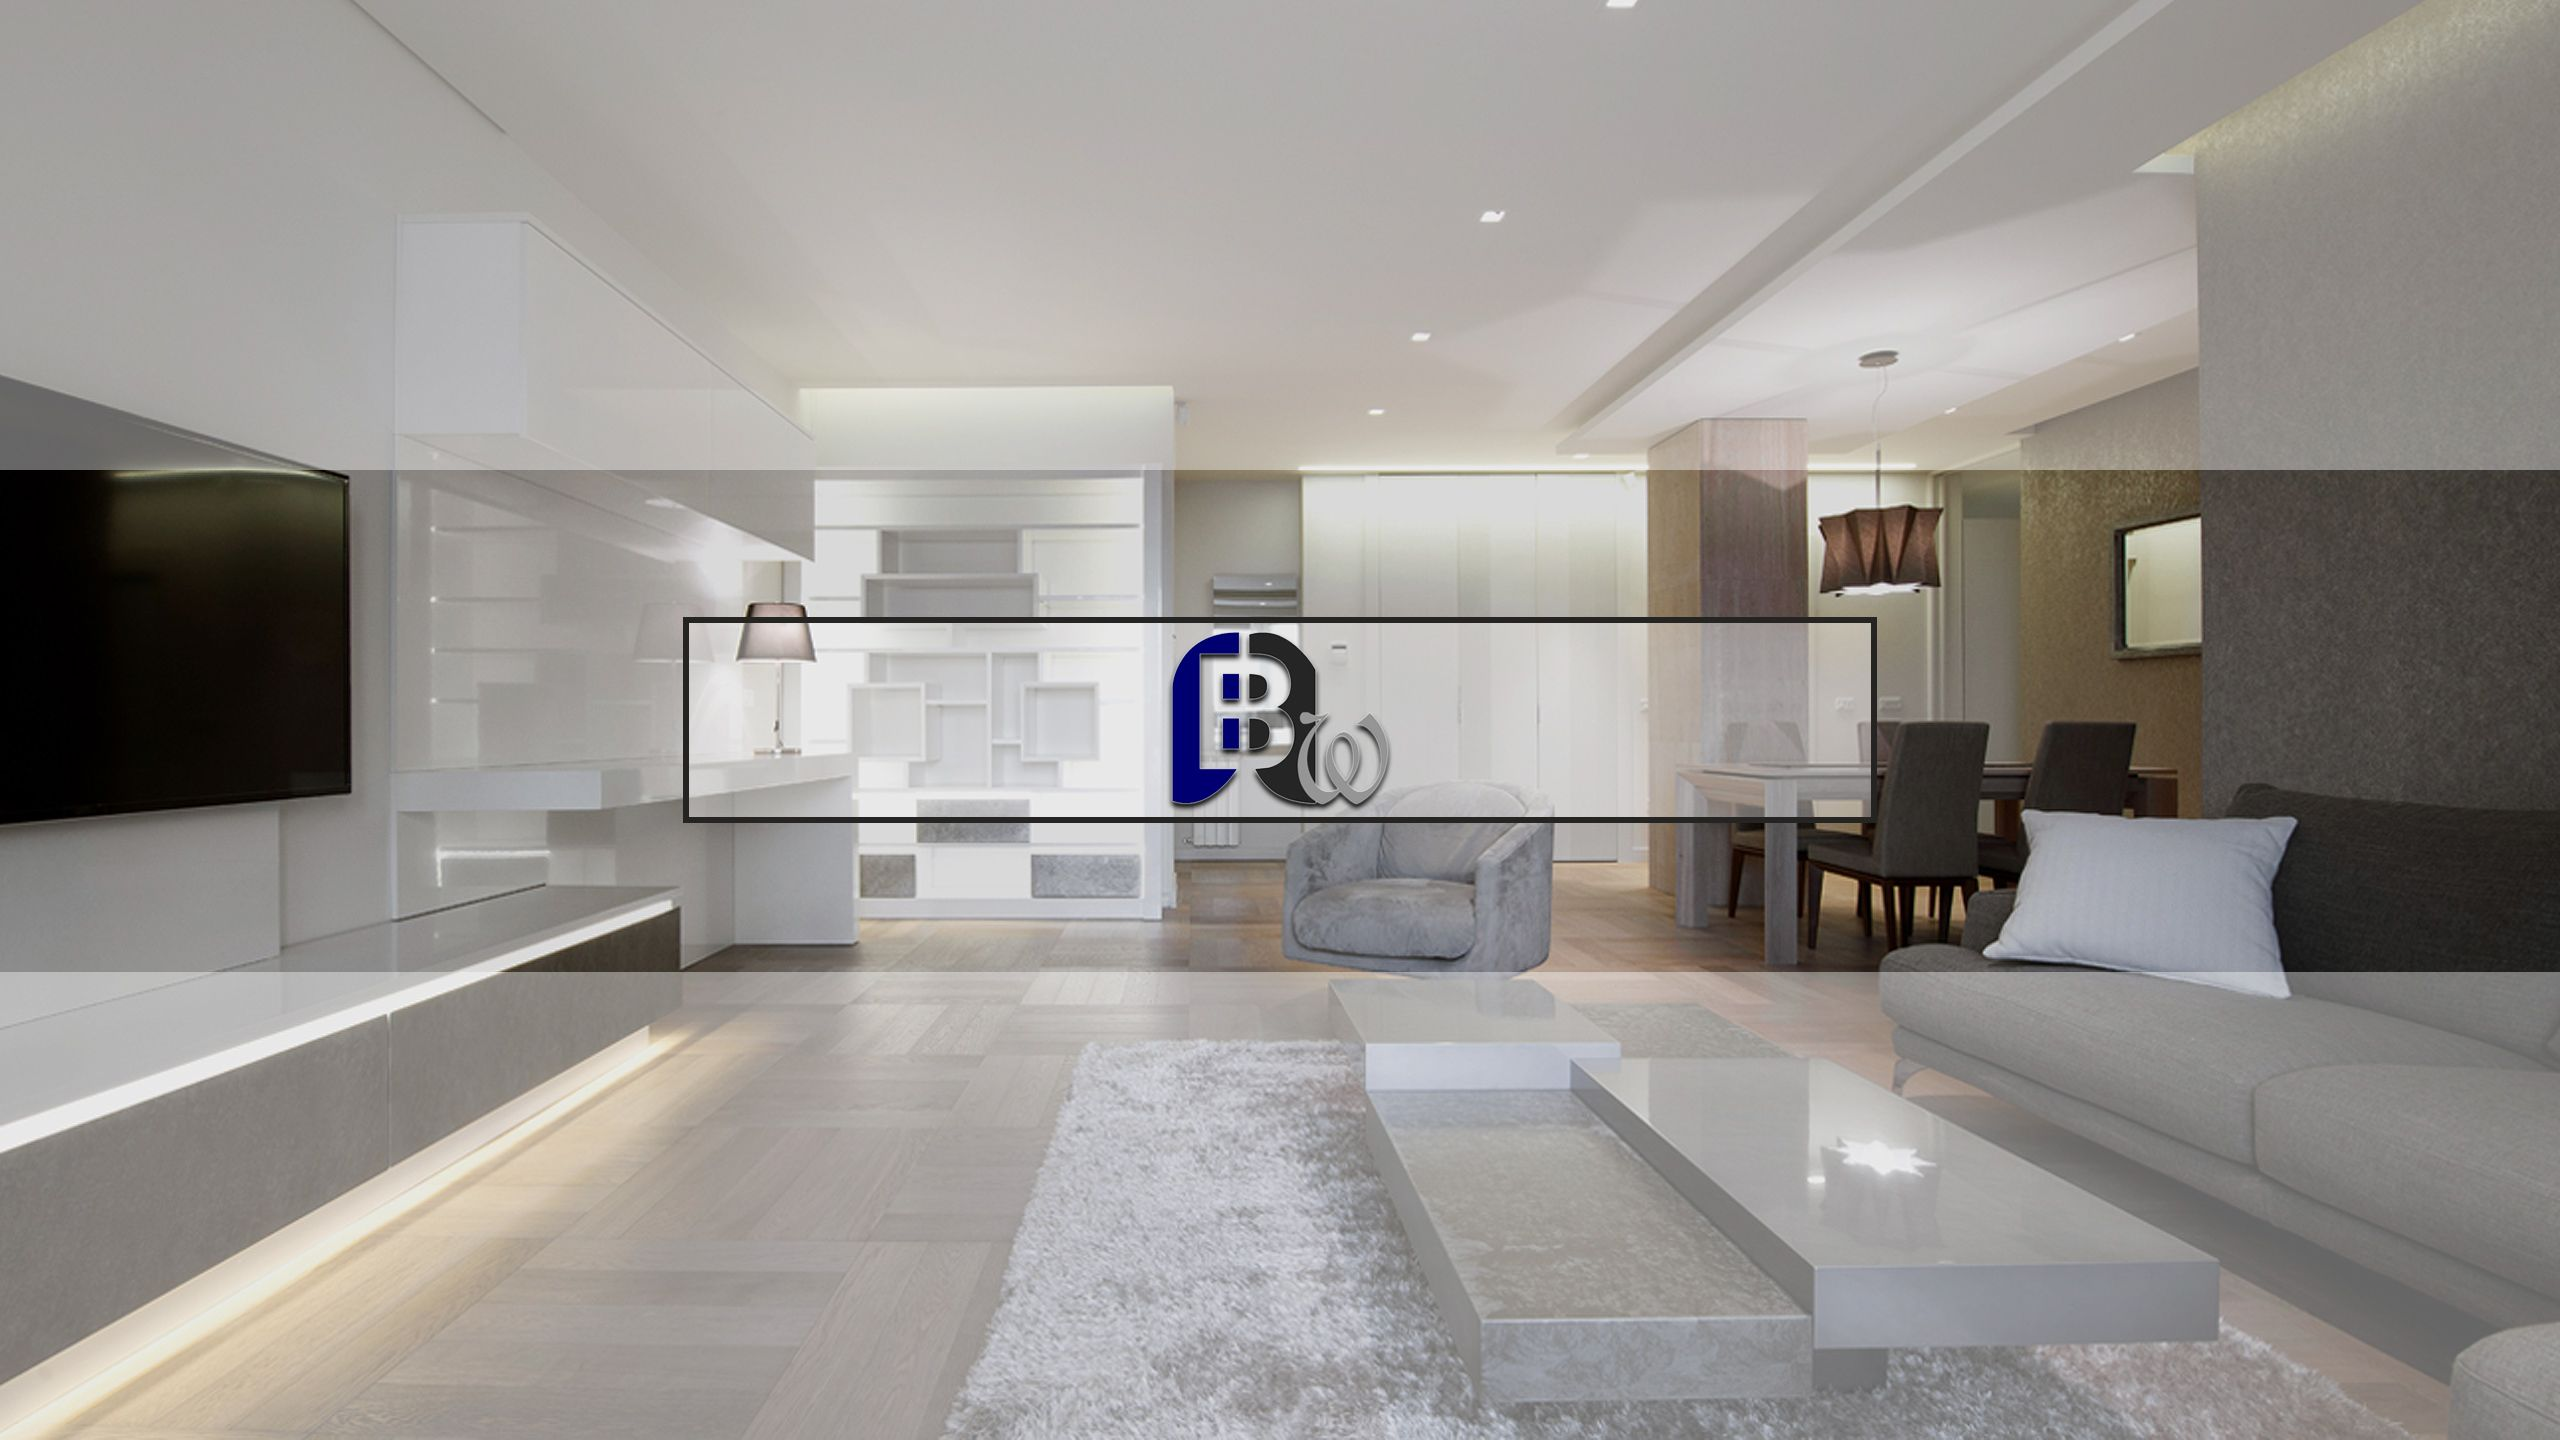 Bw designer tile is a tile contractor in tulsa ok we